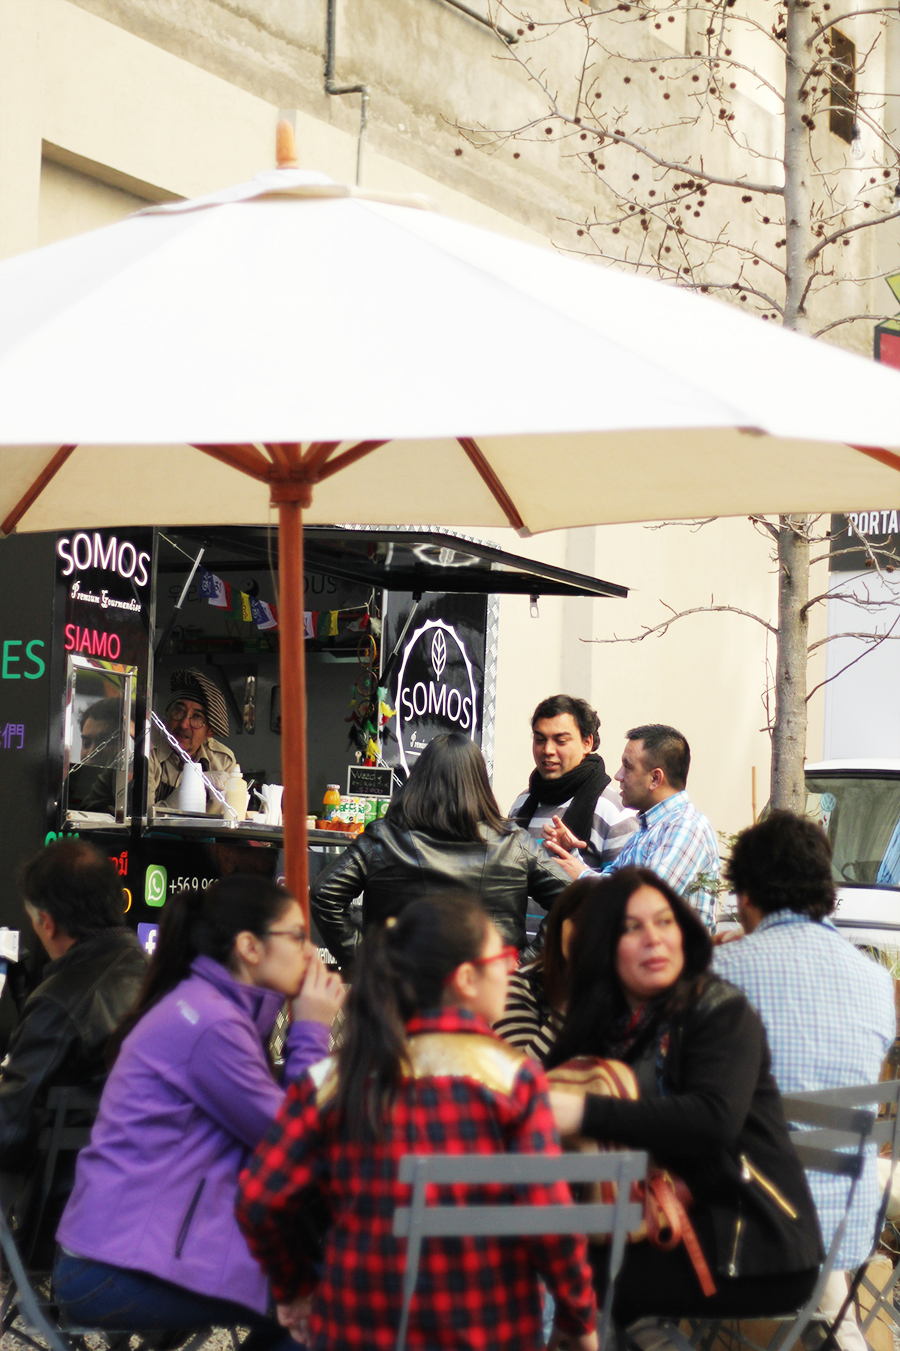 Food trucks en Santiago - Plaza de Bolsillo, Morande 83 | Golden Strokes